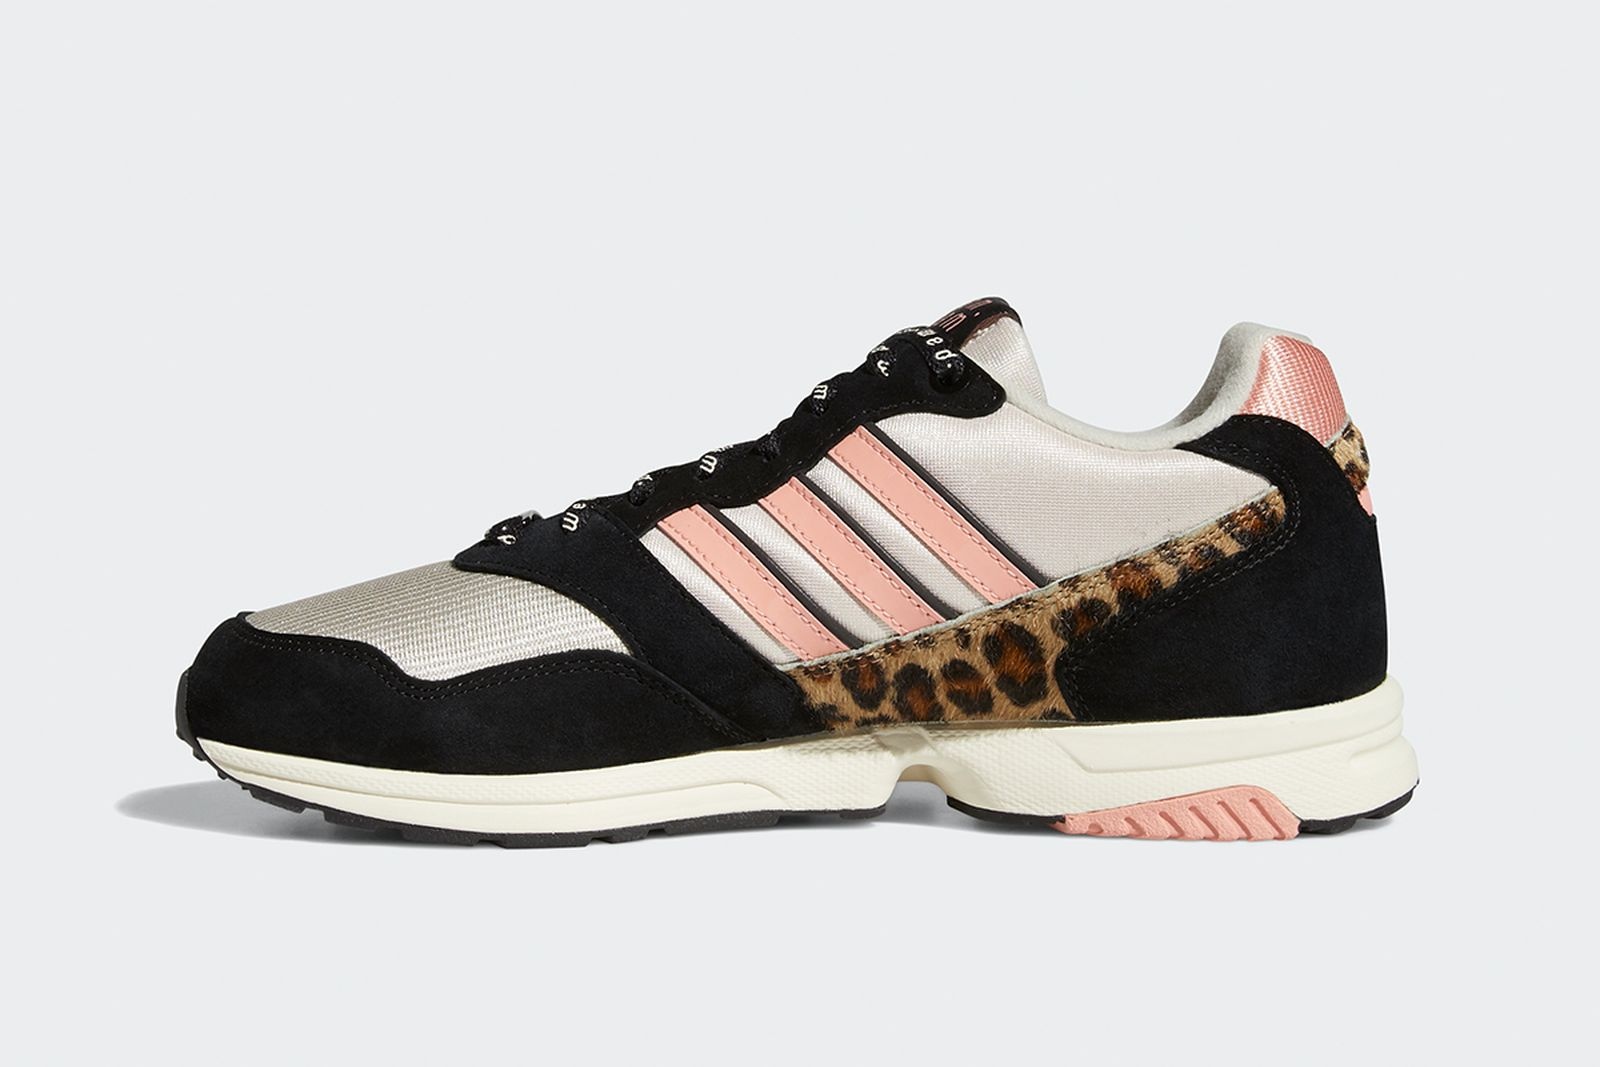 pam-pam-adidas-zx-1000-release-date-price-02